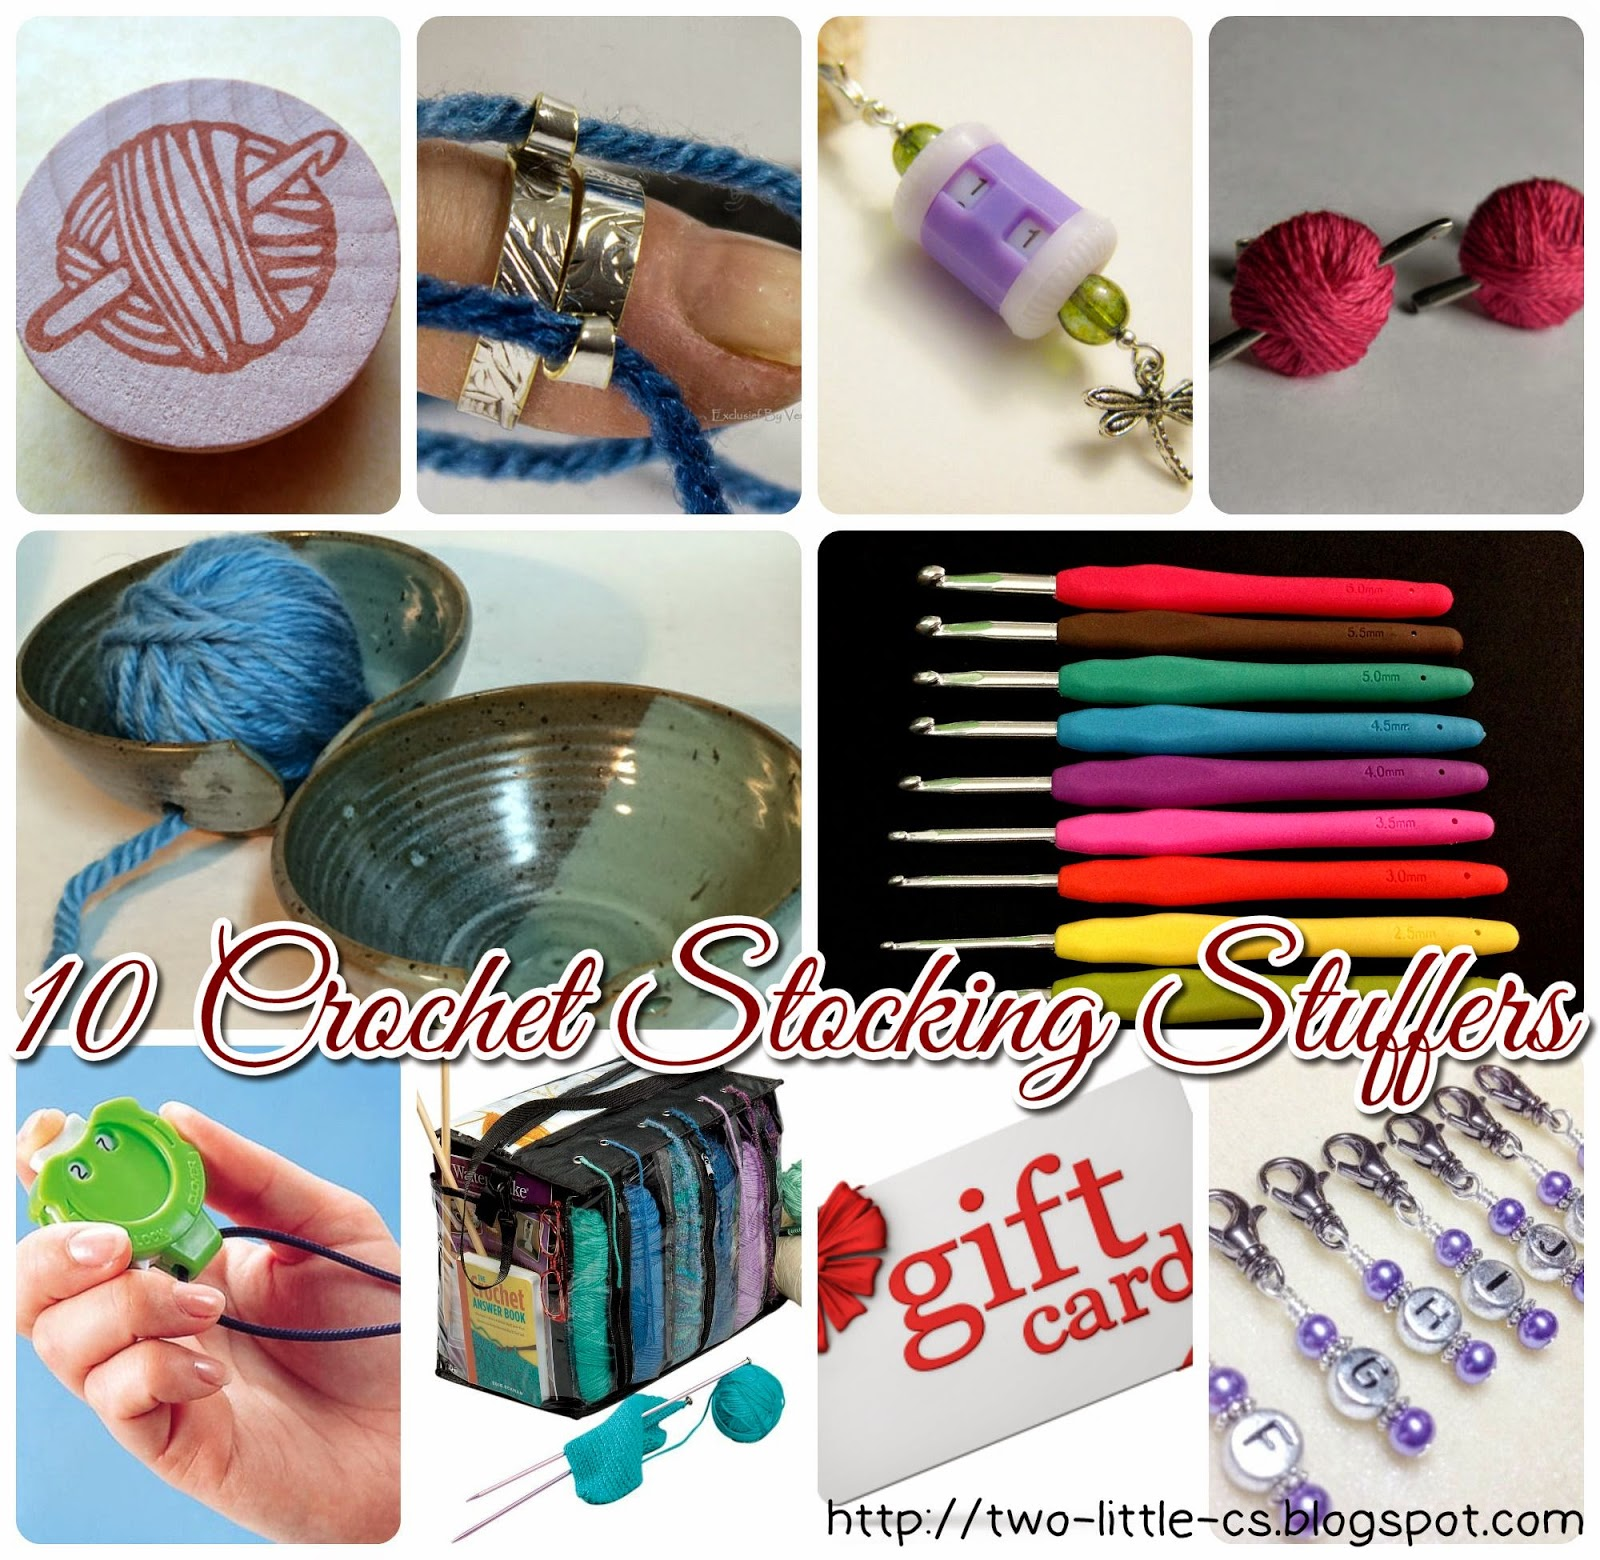 10 Stocking Stuffer Ideas for a Crocheter